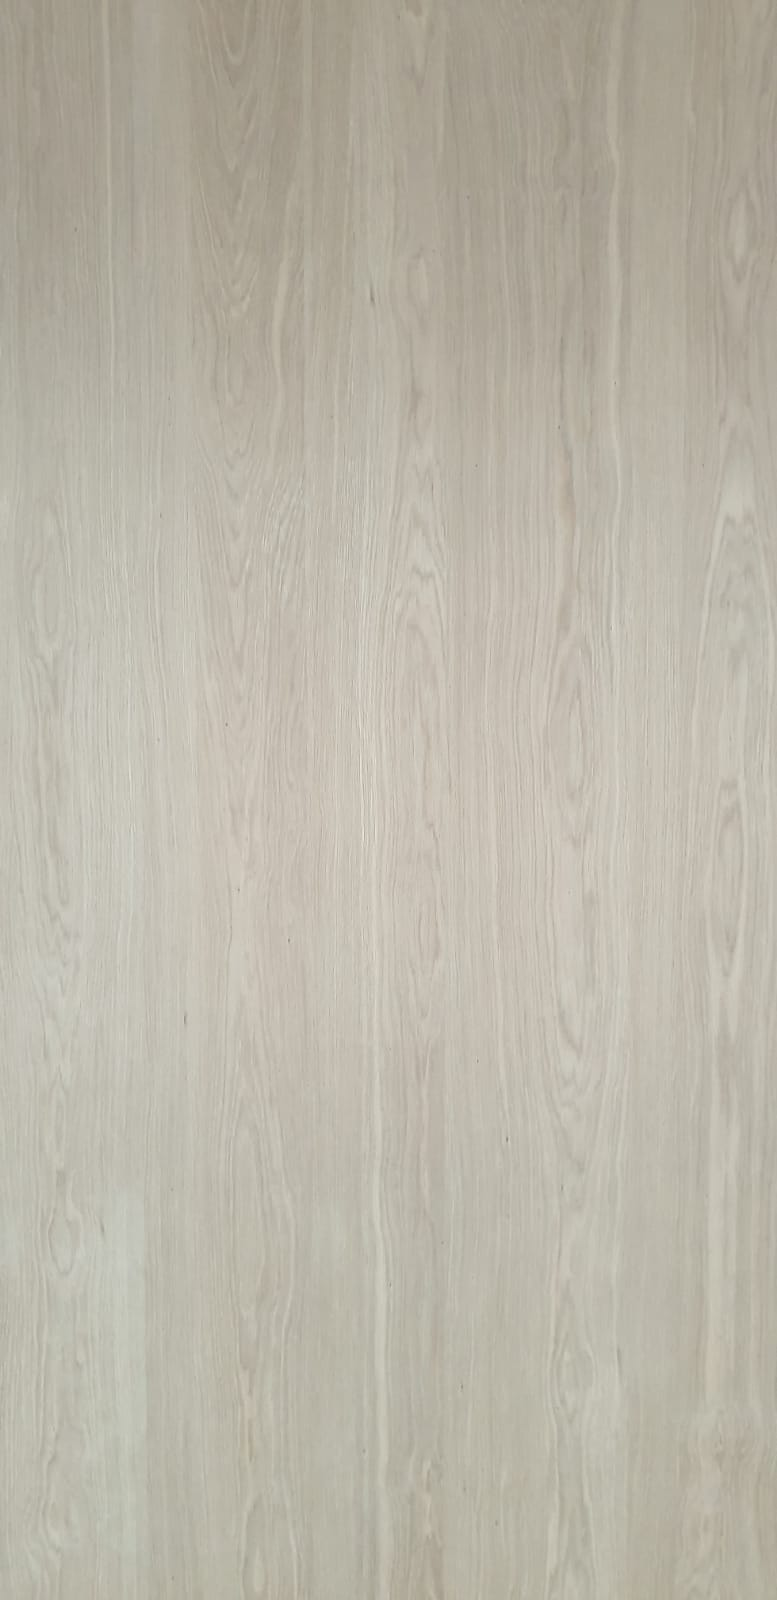 Natural Oak Ply mix matched